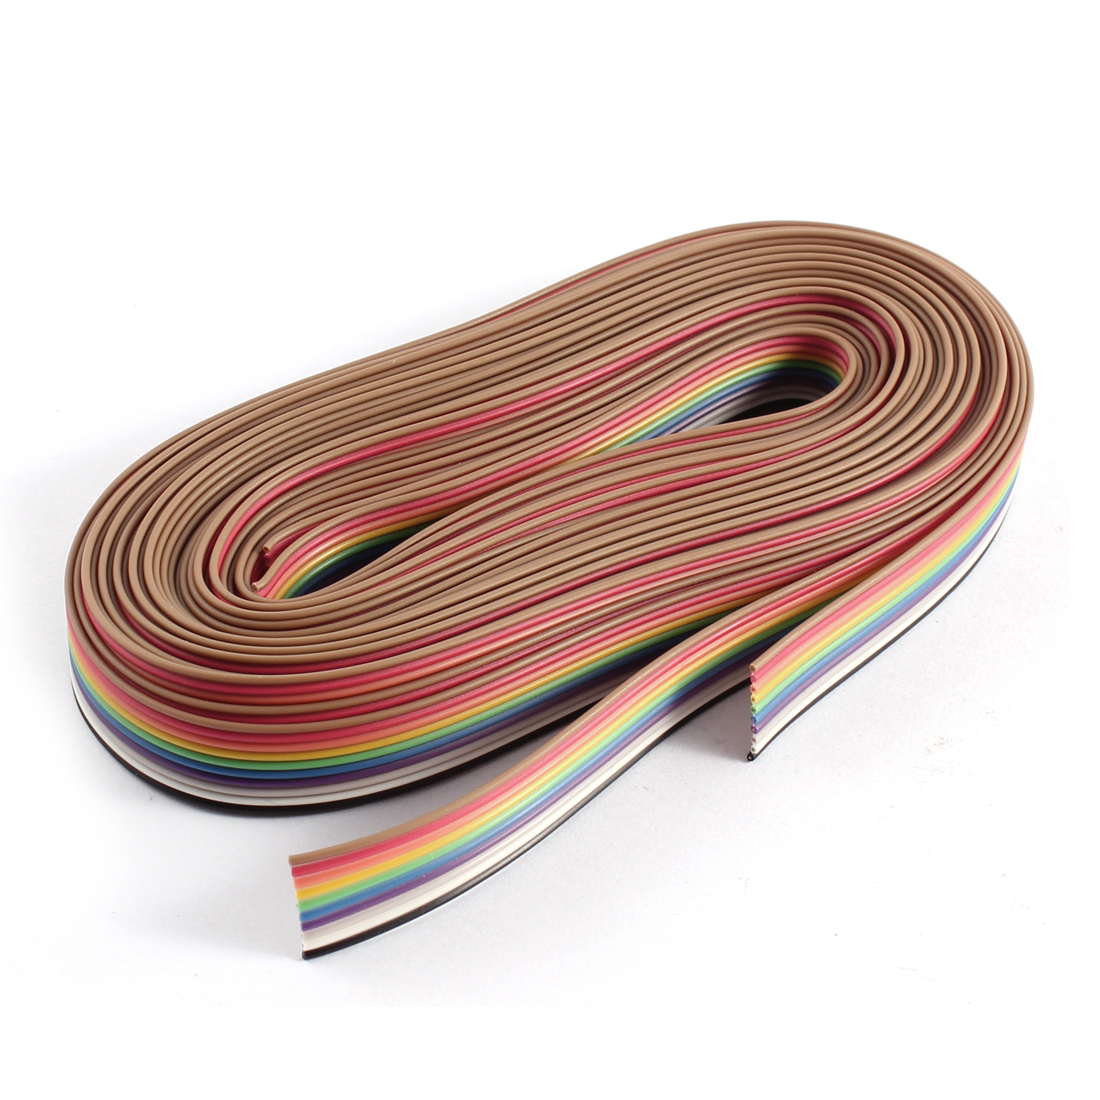 2pcs 10Ft 3Meter Long 10 Way 10 Pin Rainbow Color Flat Ribbon Cable IDC Wire 1.27mm Spacing DIY